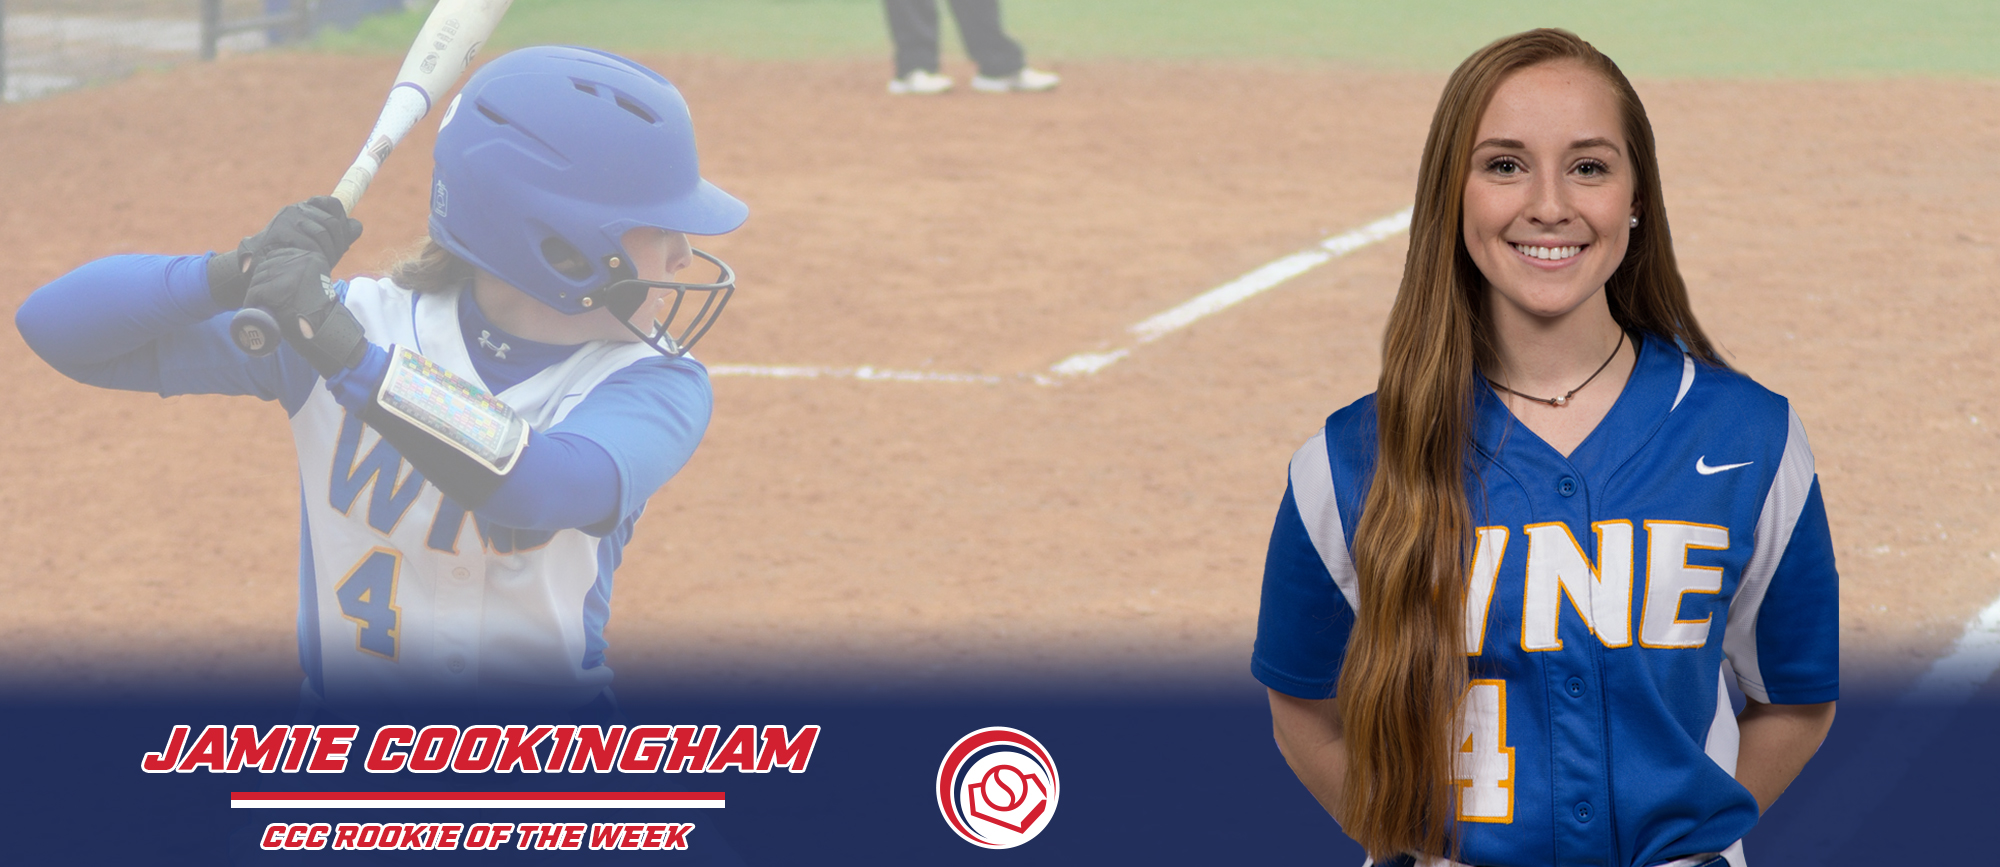 Jamie Cookingham Named CCC Rookie of the Week